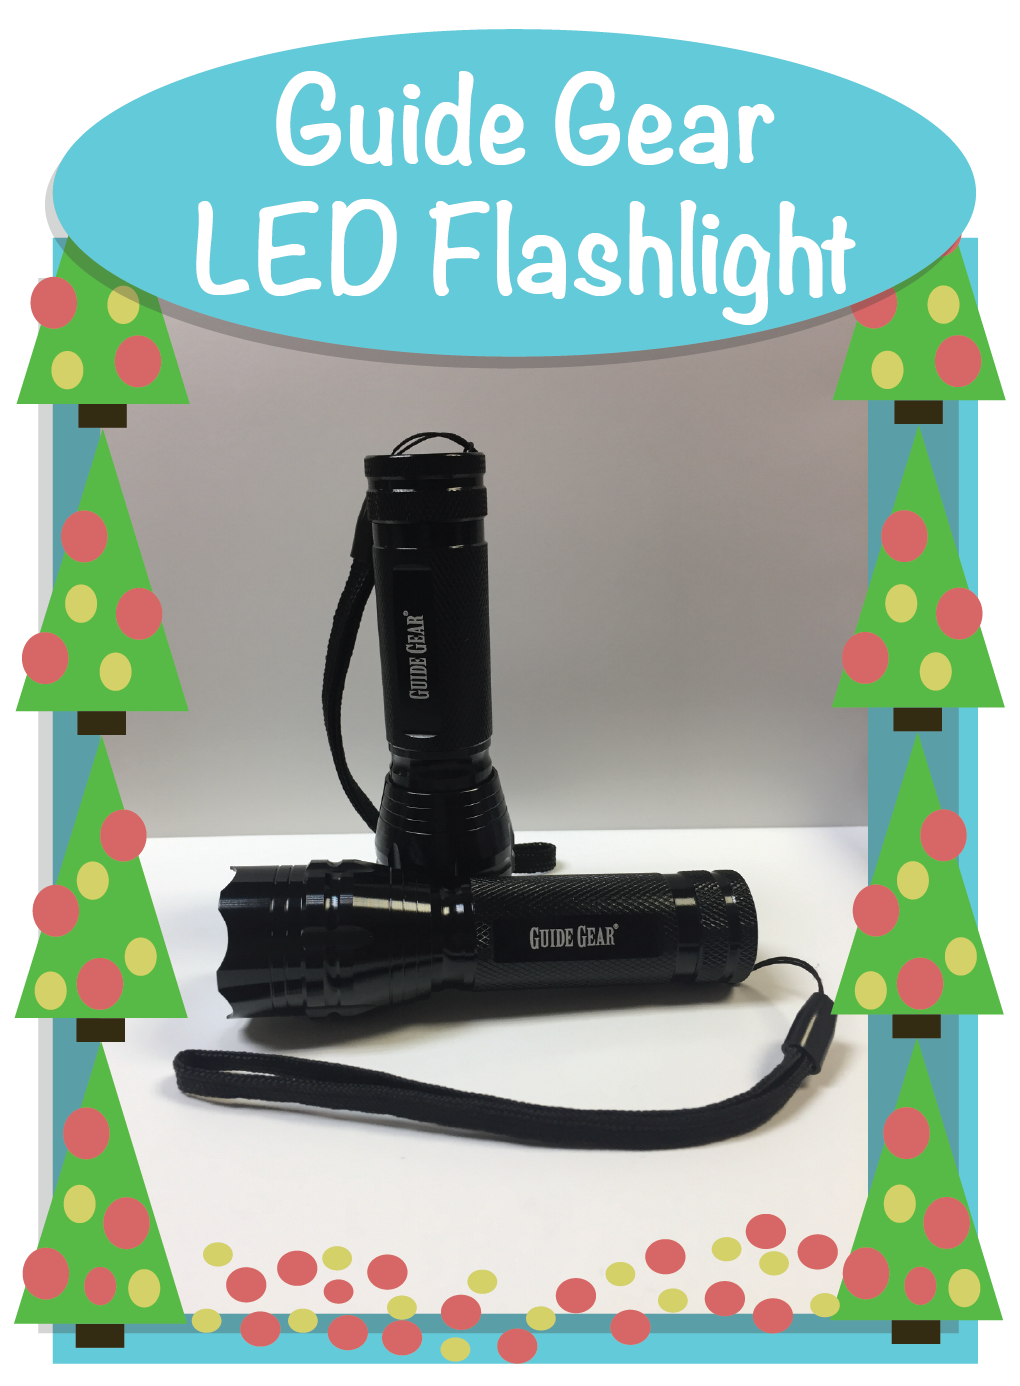 Guide Gear LED Flashlight.